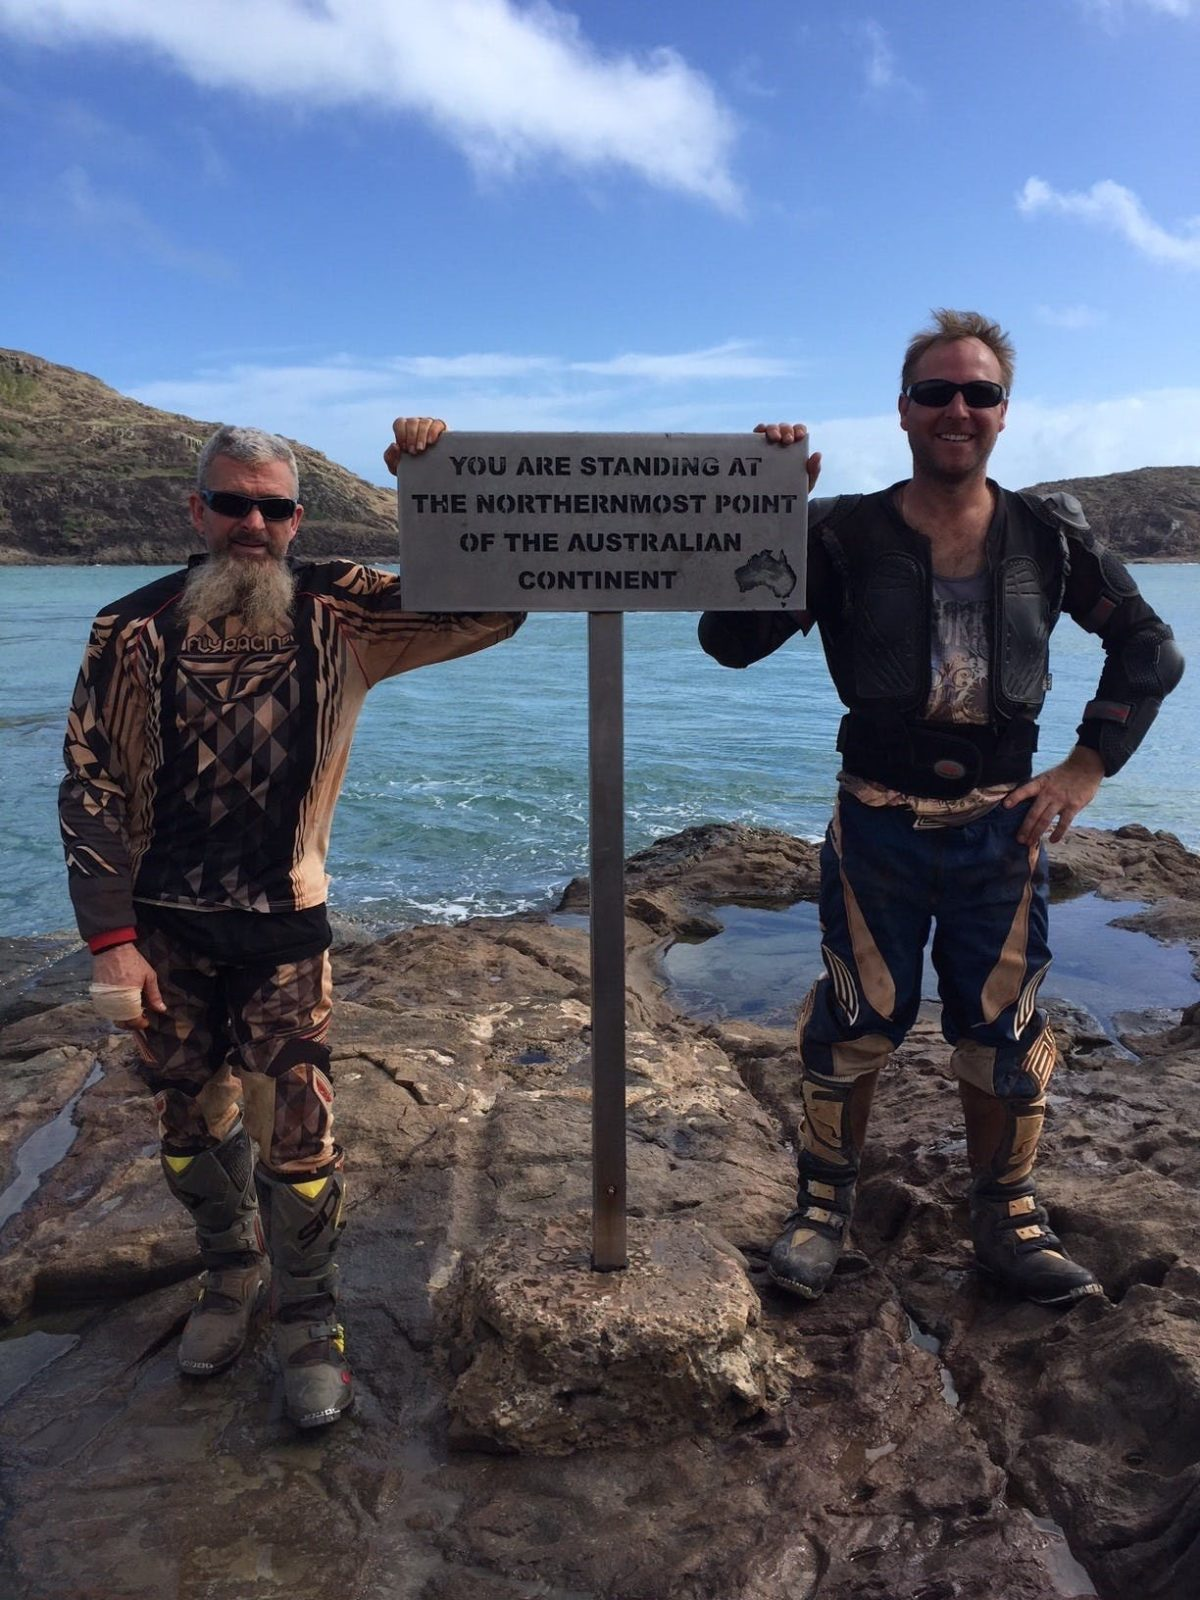 The joy experience when reaching the most Northern point of Australia after an adventurous few days